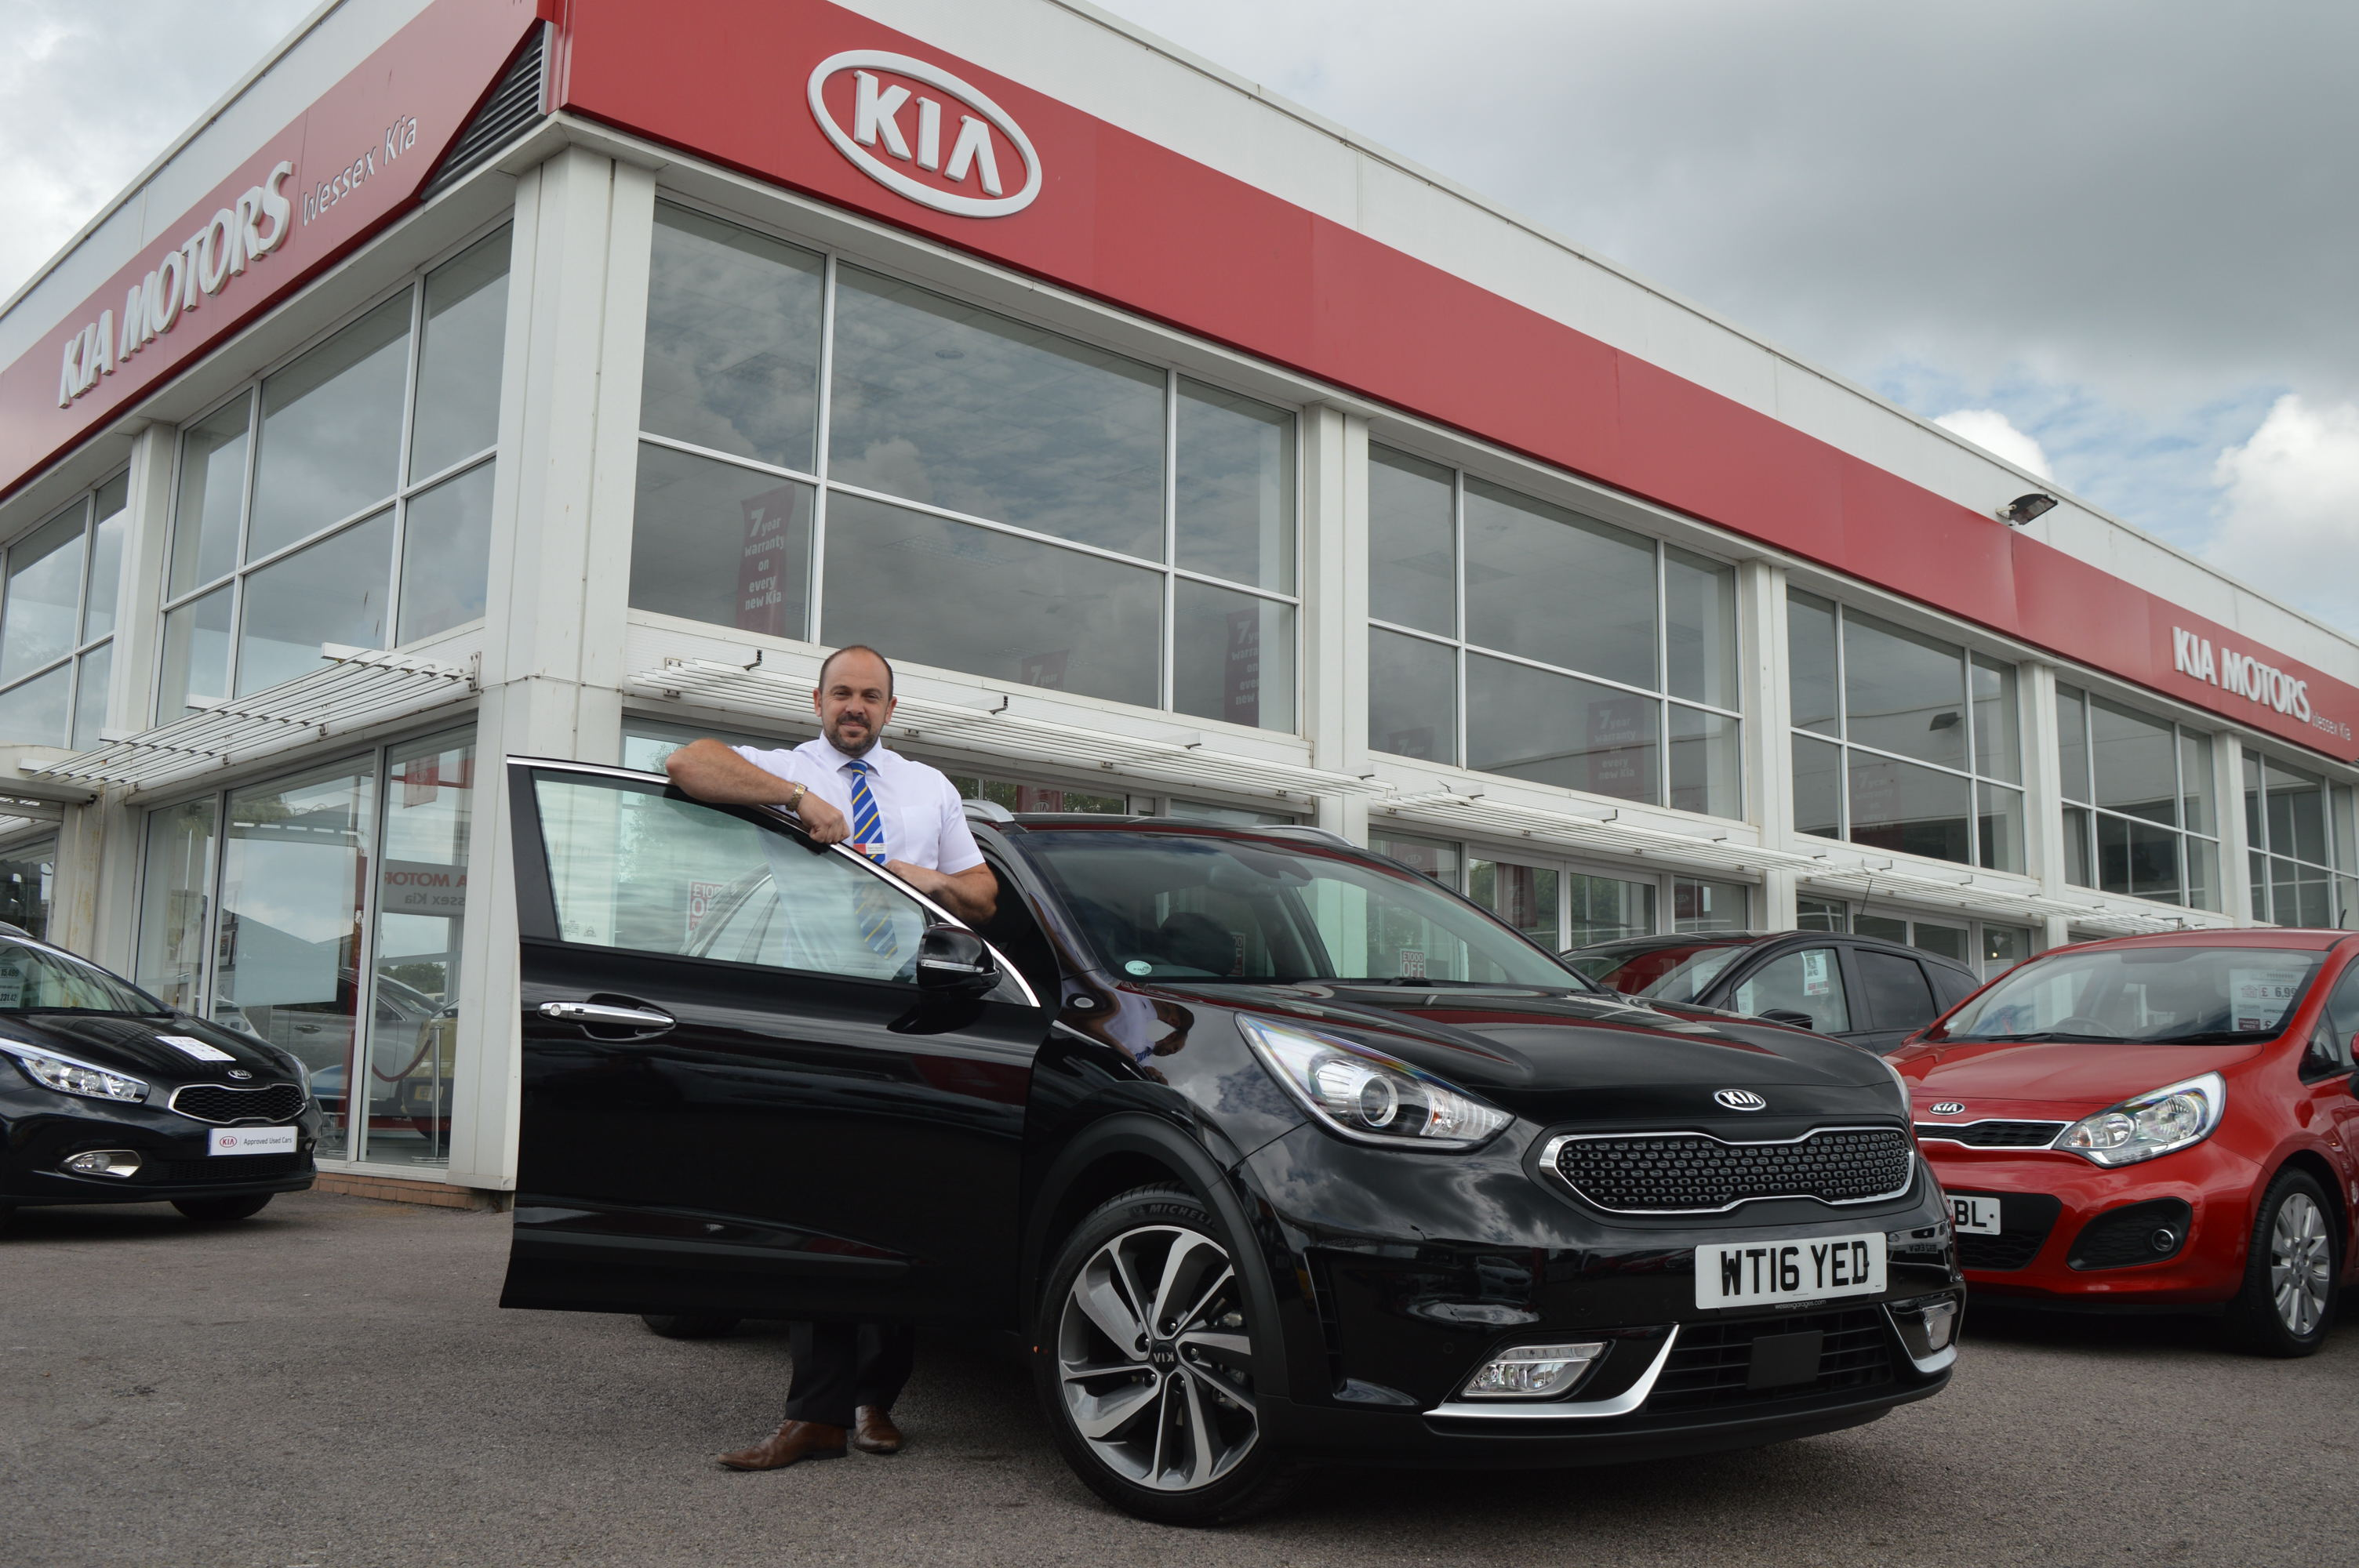 Wessex Garages' General Manager, Mark Hayward with the Kia Niro at the Feeder Road dealership in Bristol.